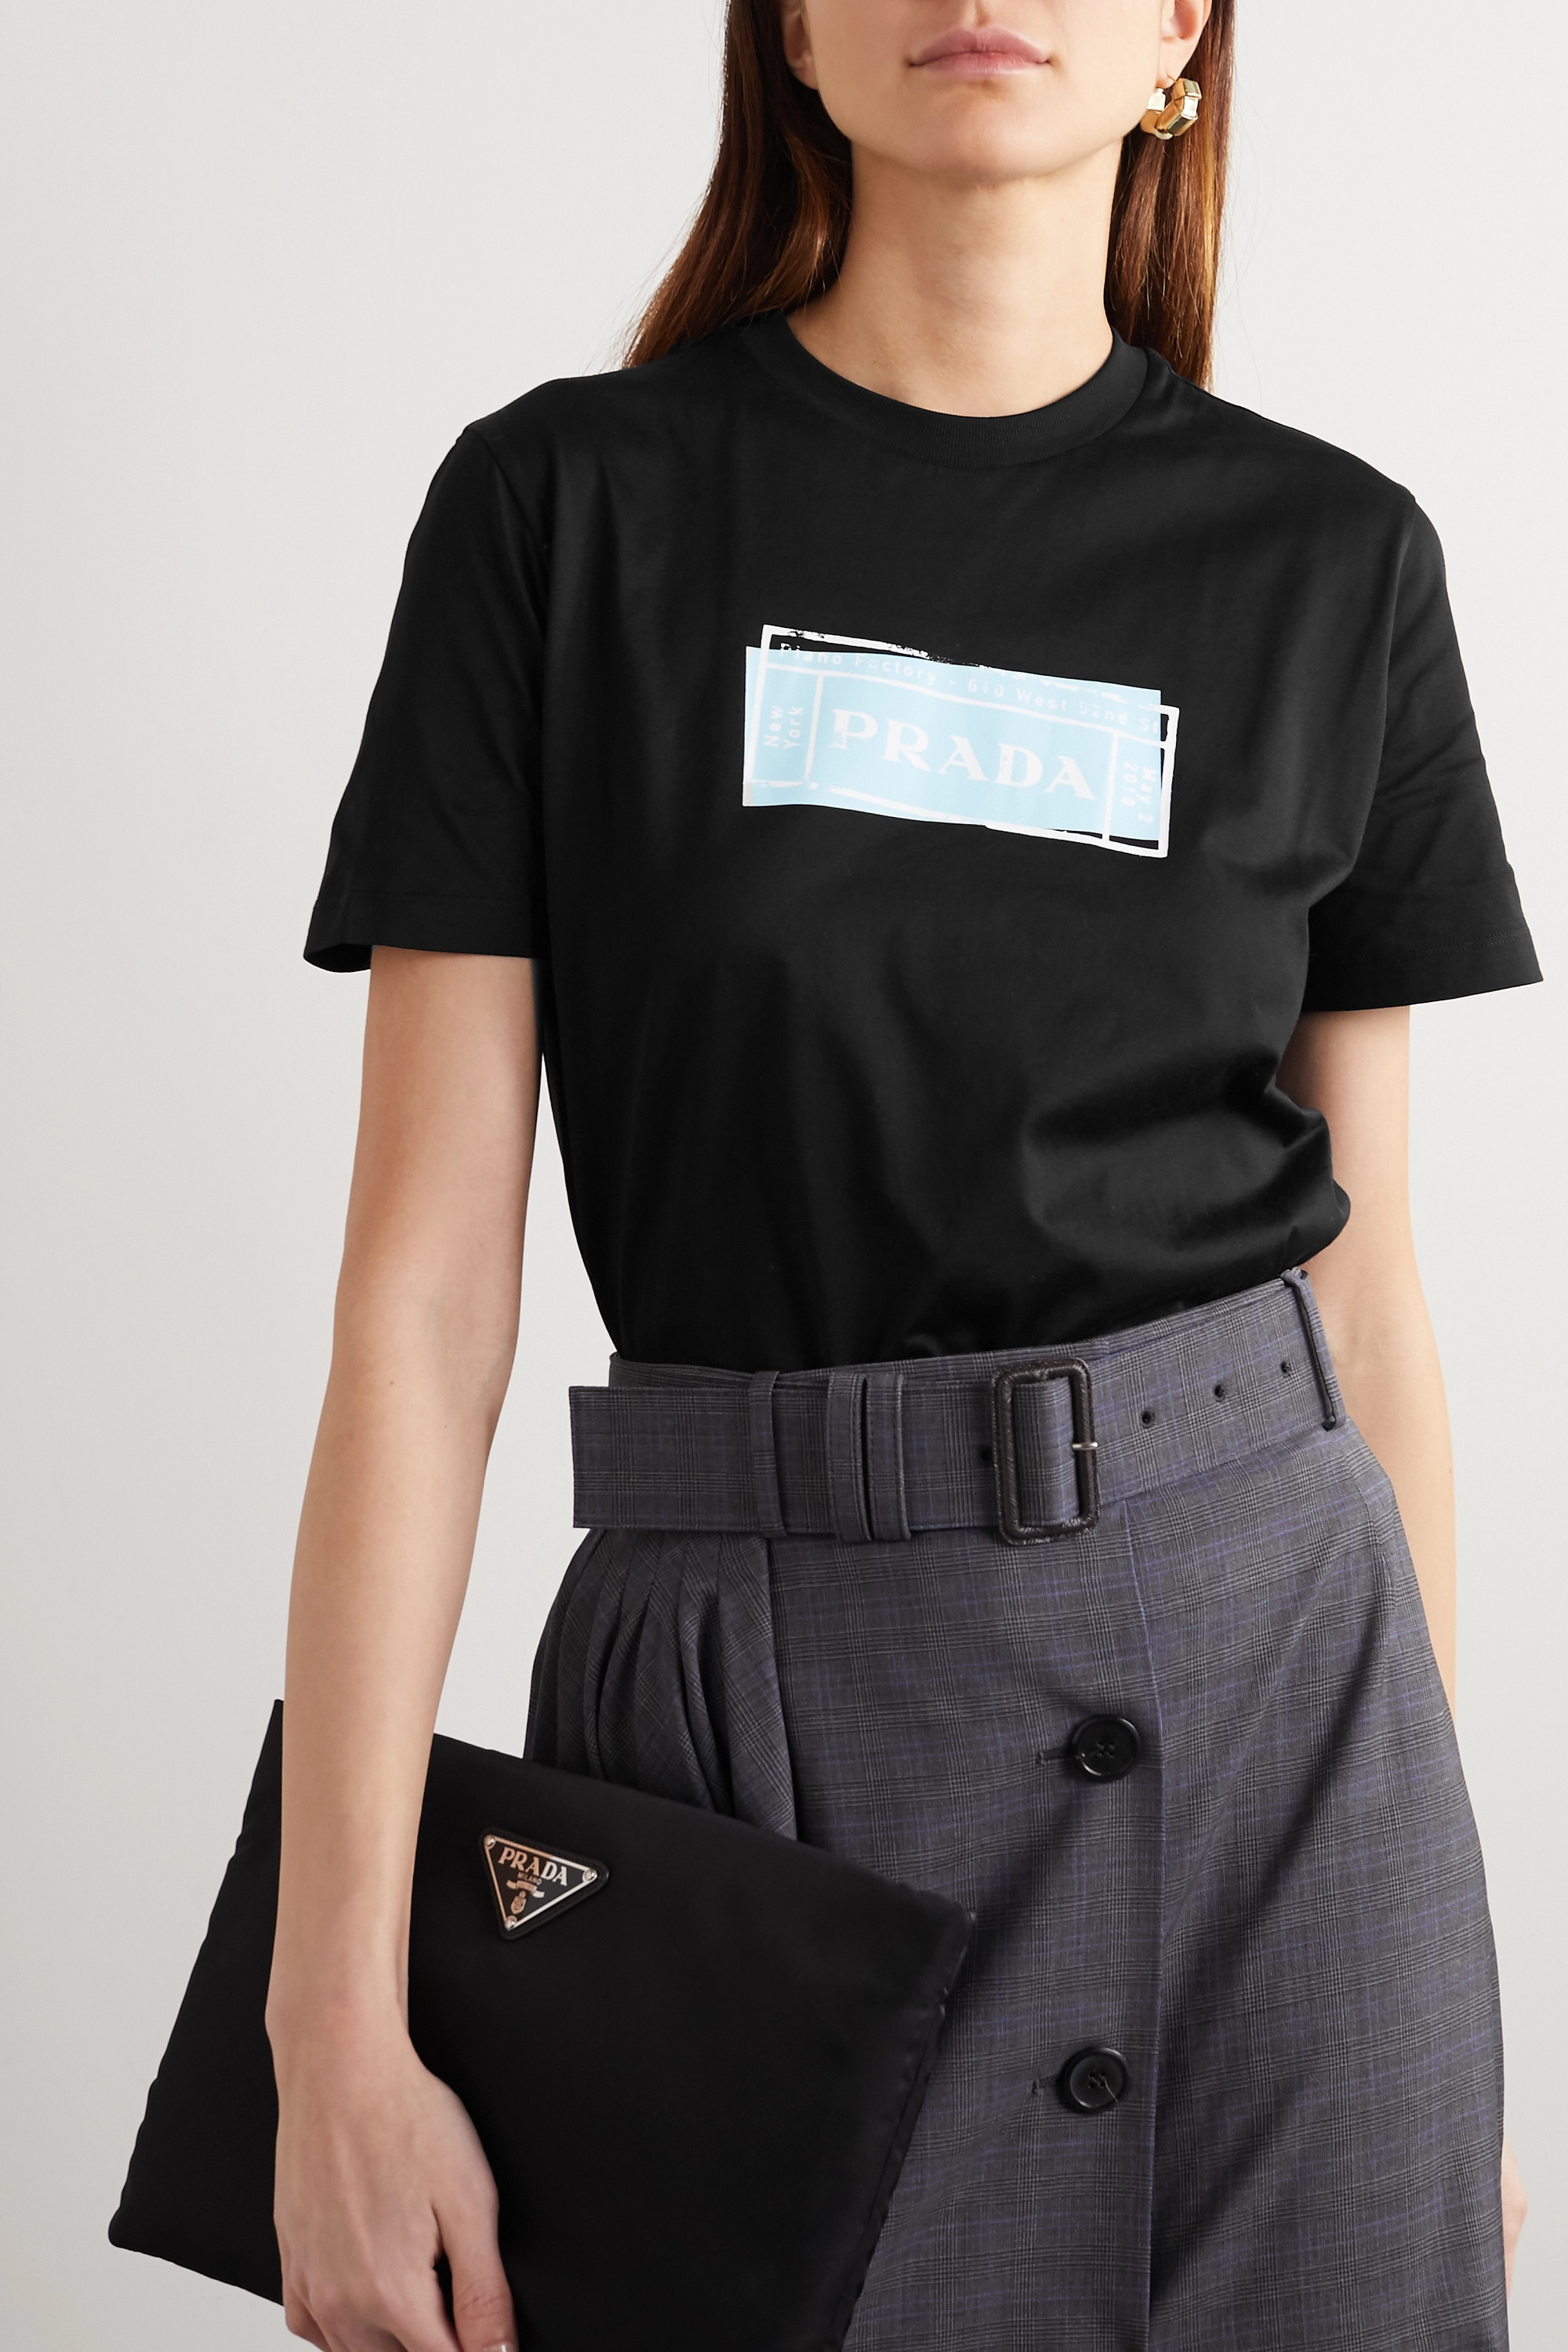 Prada Leather-trimmed printed cotton-jersey T-shirt